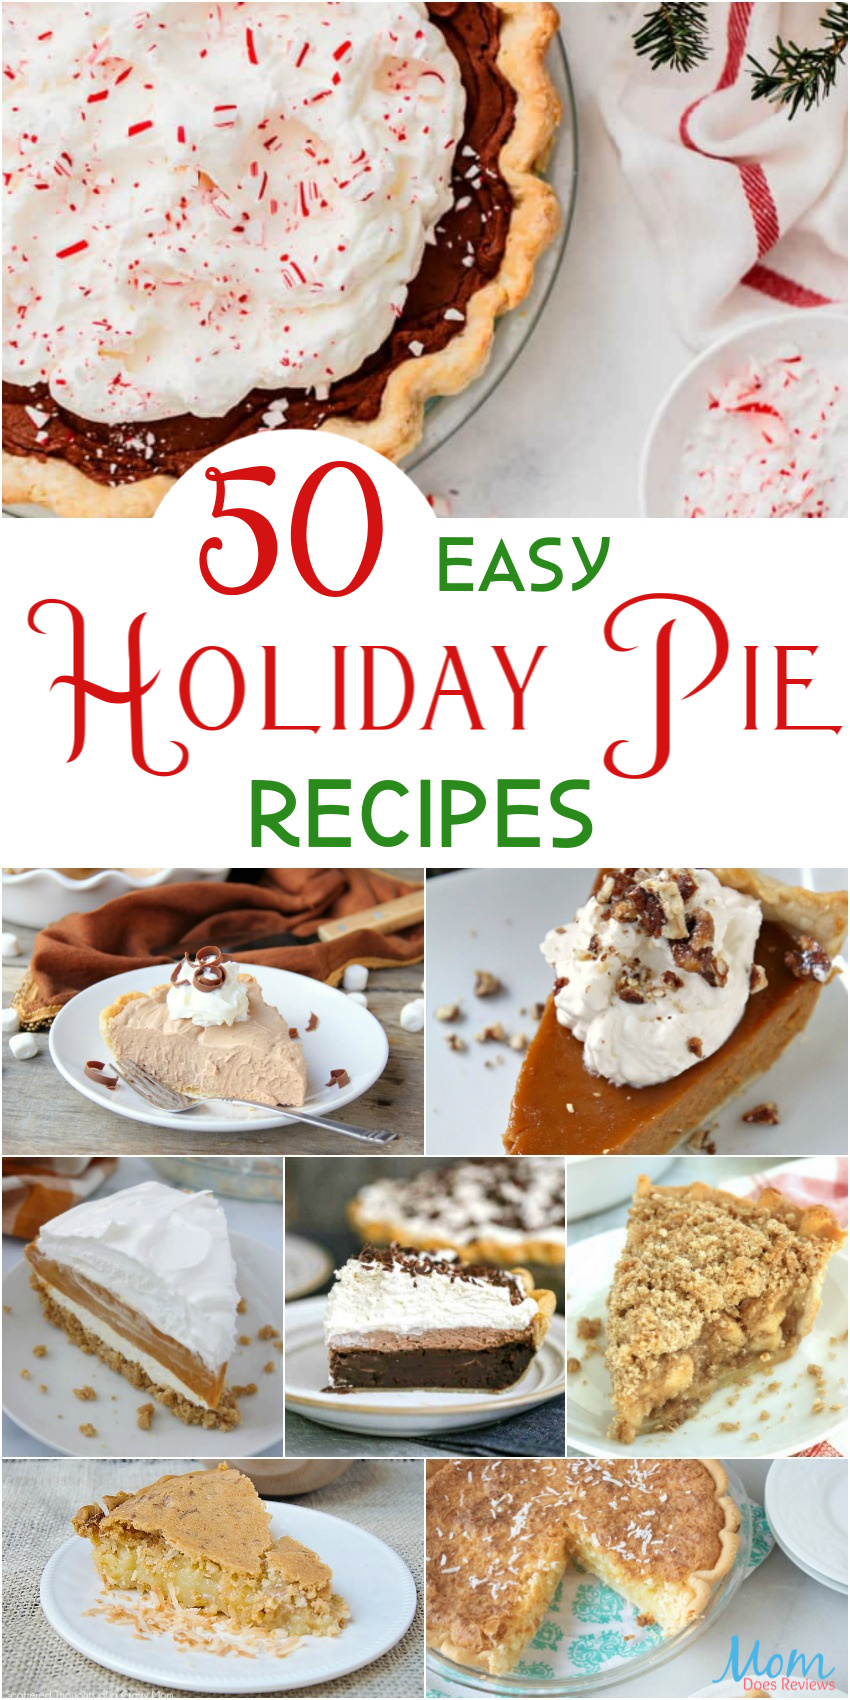 50 Easy Holiday Pie Recipes for a Sweet Addition to the Menu